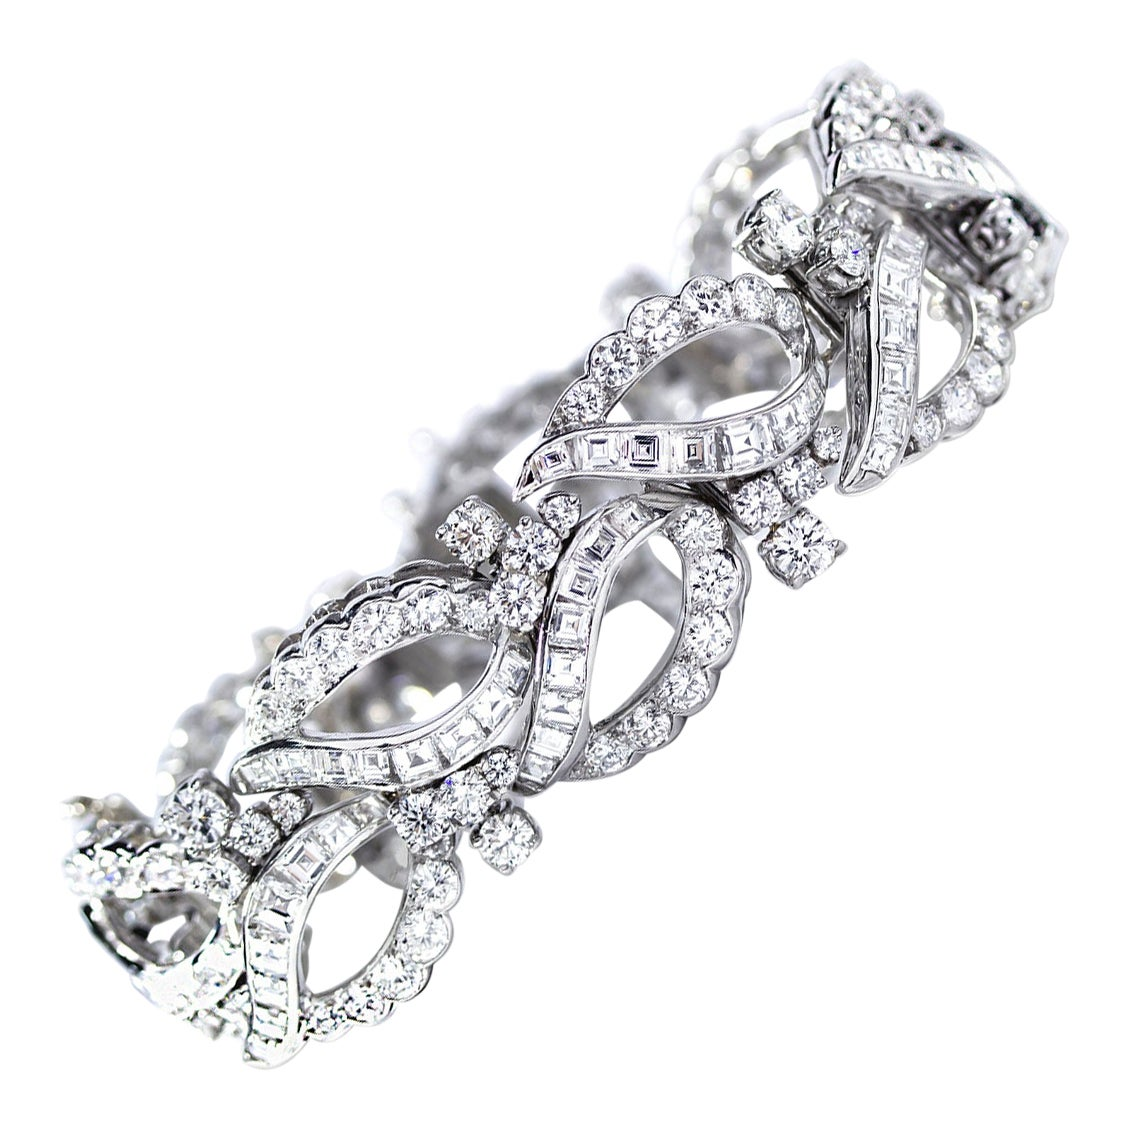 Oscar Heyman Platinum Round and Square Diamond Paisley Pattern Estate Bracelet